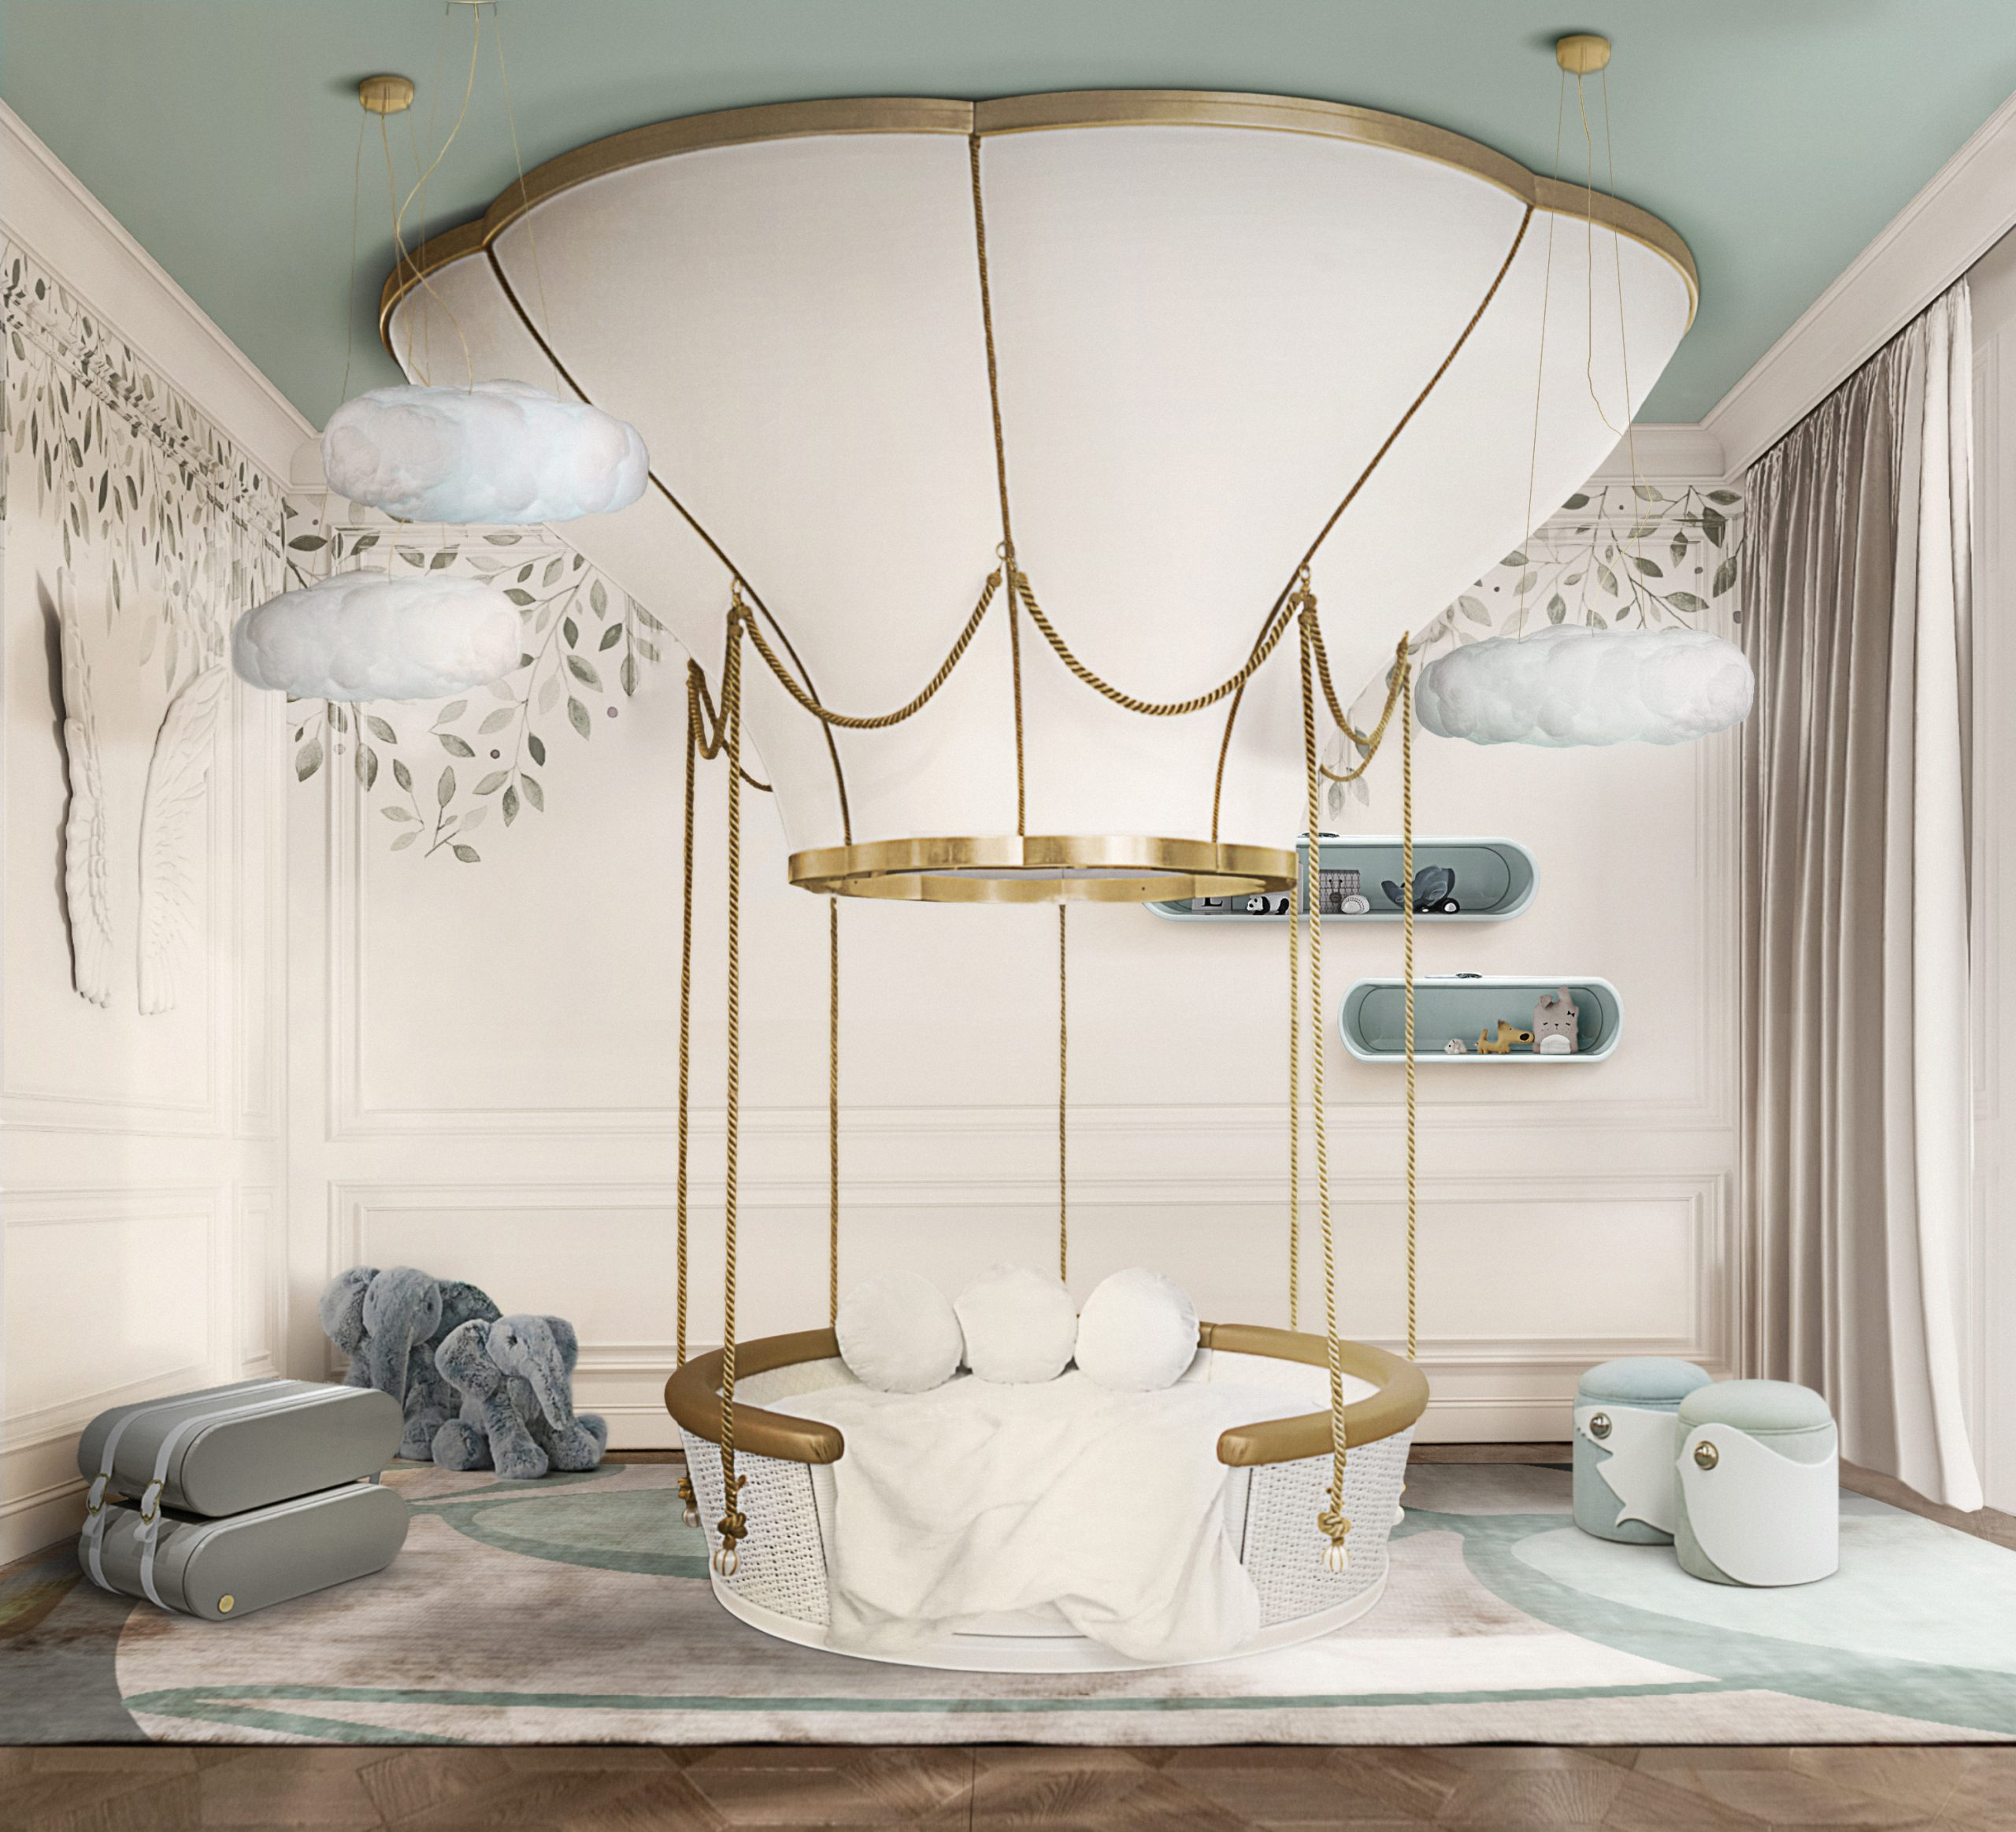 Fantasy Air Balloon Bed: the ultimate luxury kids bed